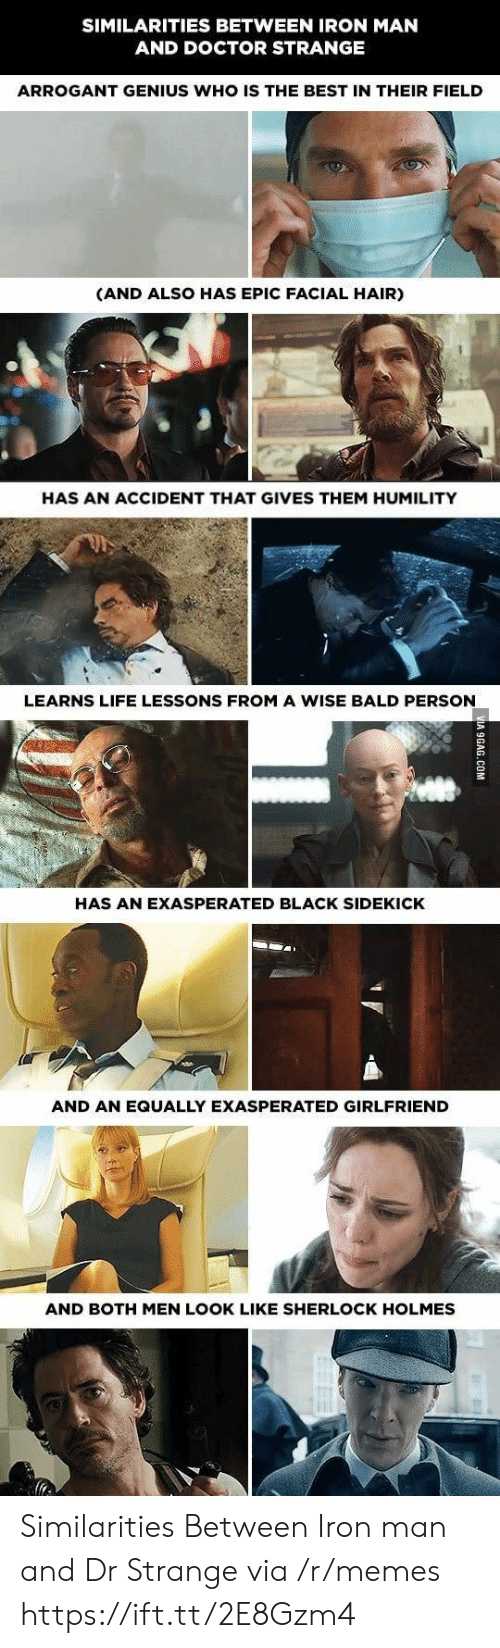 sidekick: SIMILARITIES BETWEEN IRON MAN  AND DOCTOR STRANGE  ARROGANT GENIUS WHO IS THE BEST IN THEIR FIELD  (AND ALSO HAS EPIC FACIAL HAIR)  HAS AN ACCIDENT THAT GIVES THEM HUMILITY  LEARNS LIFE LESSONS FROM A WISE BALD PERSON  HAS AN EXASPERATED BLACK SIDEKICK  AND AN EQUALLY EXASPERATED GIRLFRIEND  AND BOTH MEN LOOK LIKE SHERLOCK HOLMES Similarities Between Iron man and Dr Strange via /r/memes https://ift.tt/2E8Gzm4